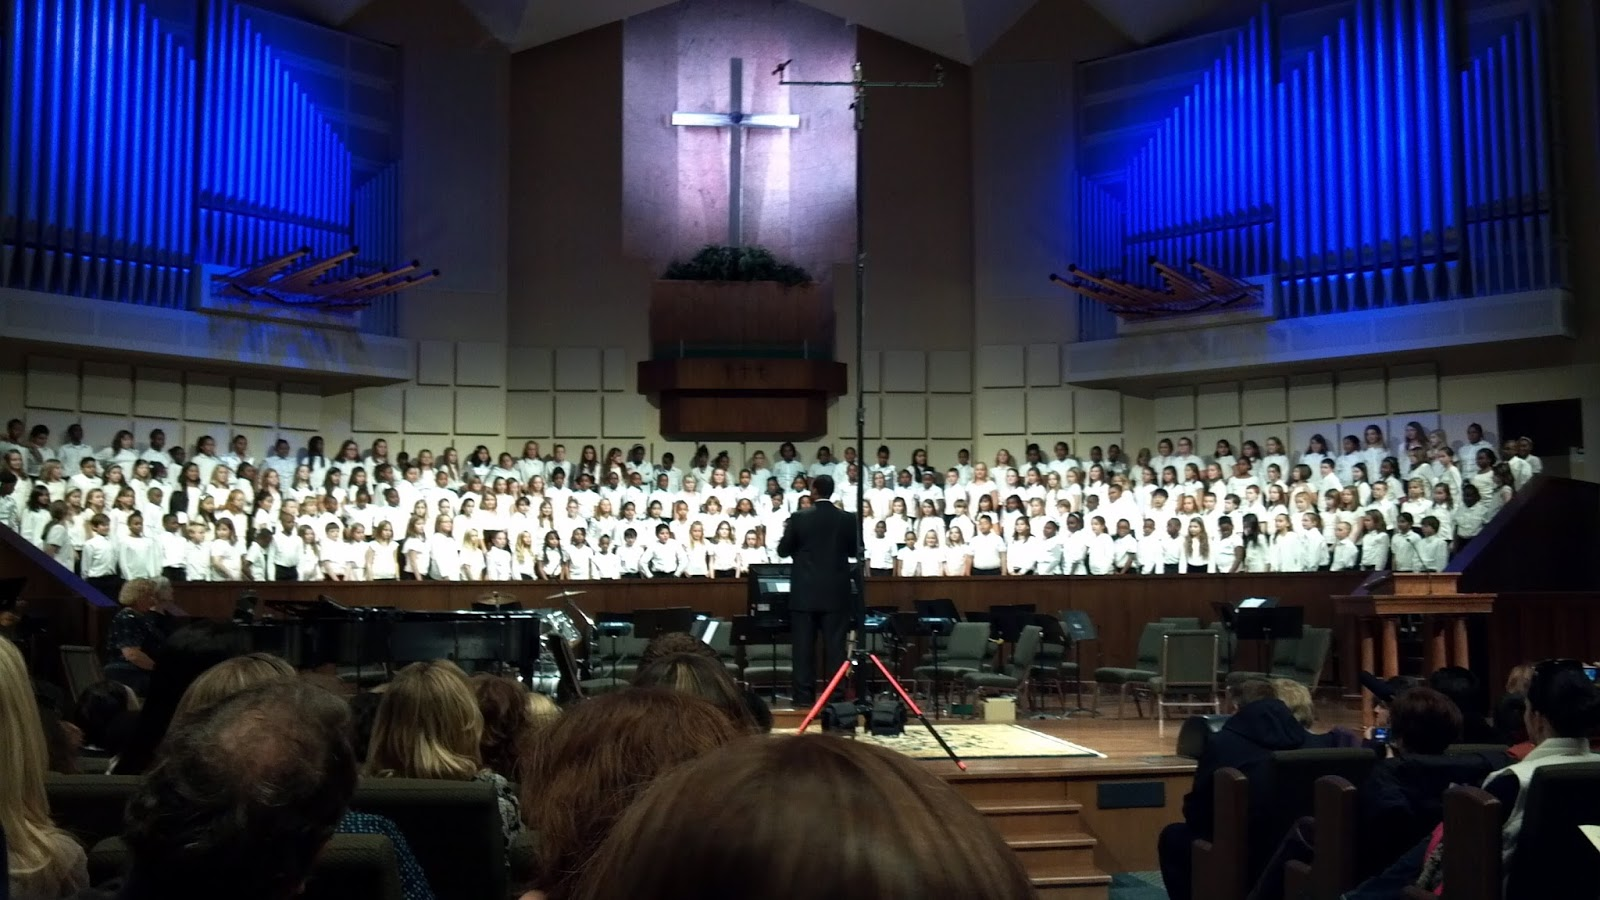 Gmea state wide elementary honor chorus gmea sehc closed the choirs reached maximum capacity a week before the registration deadline